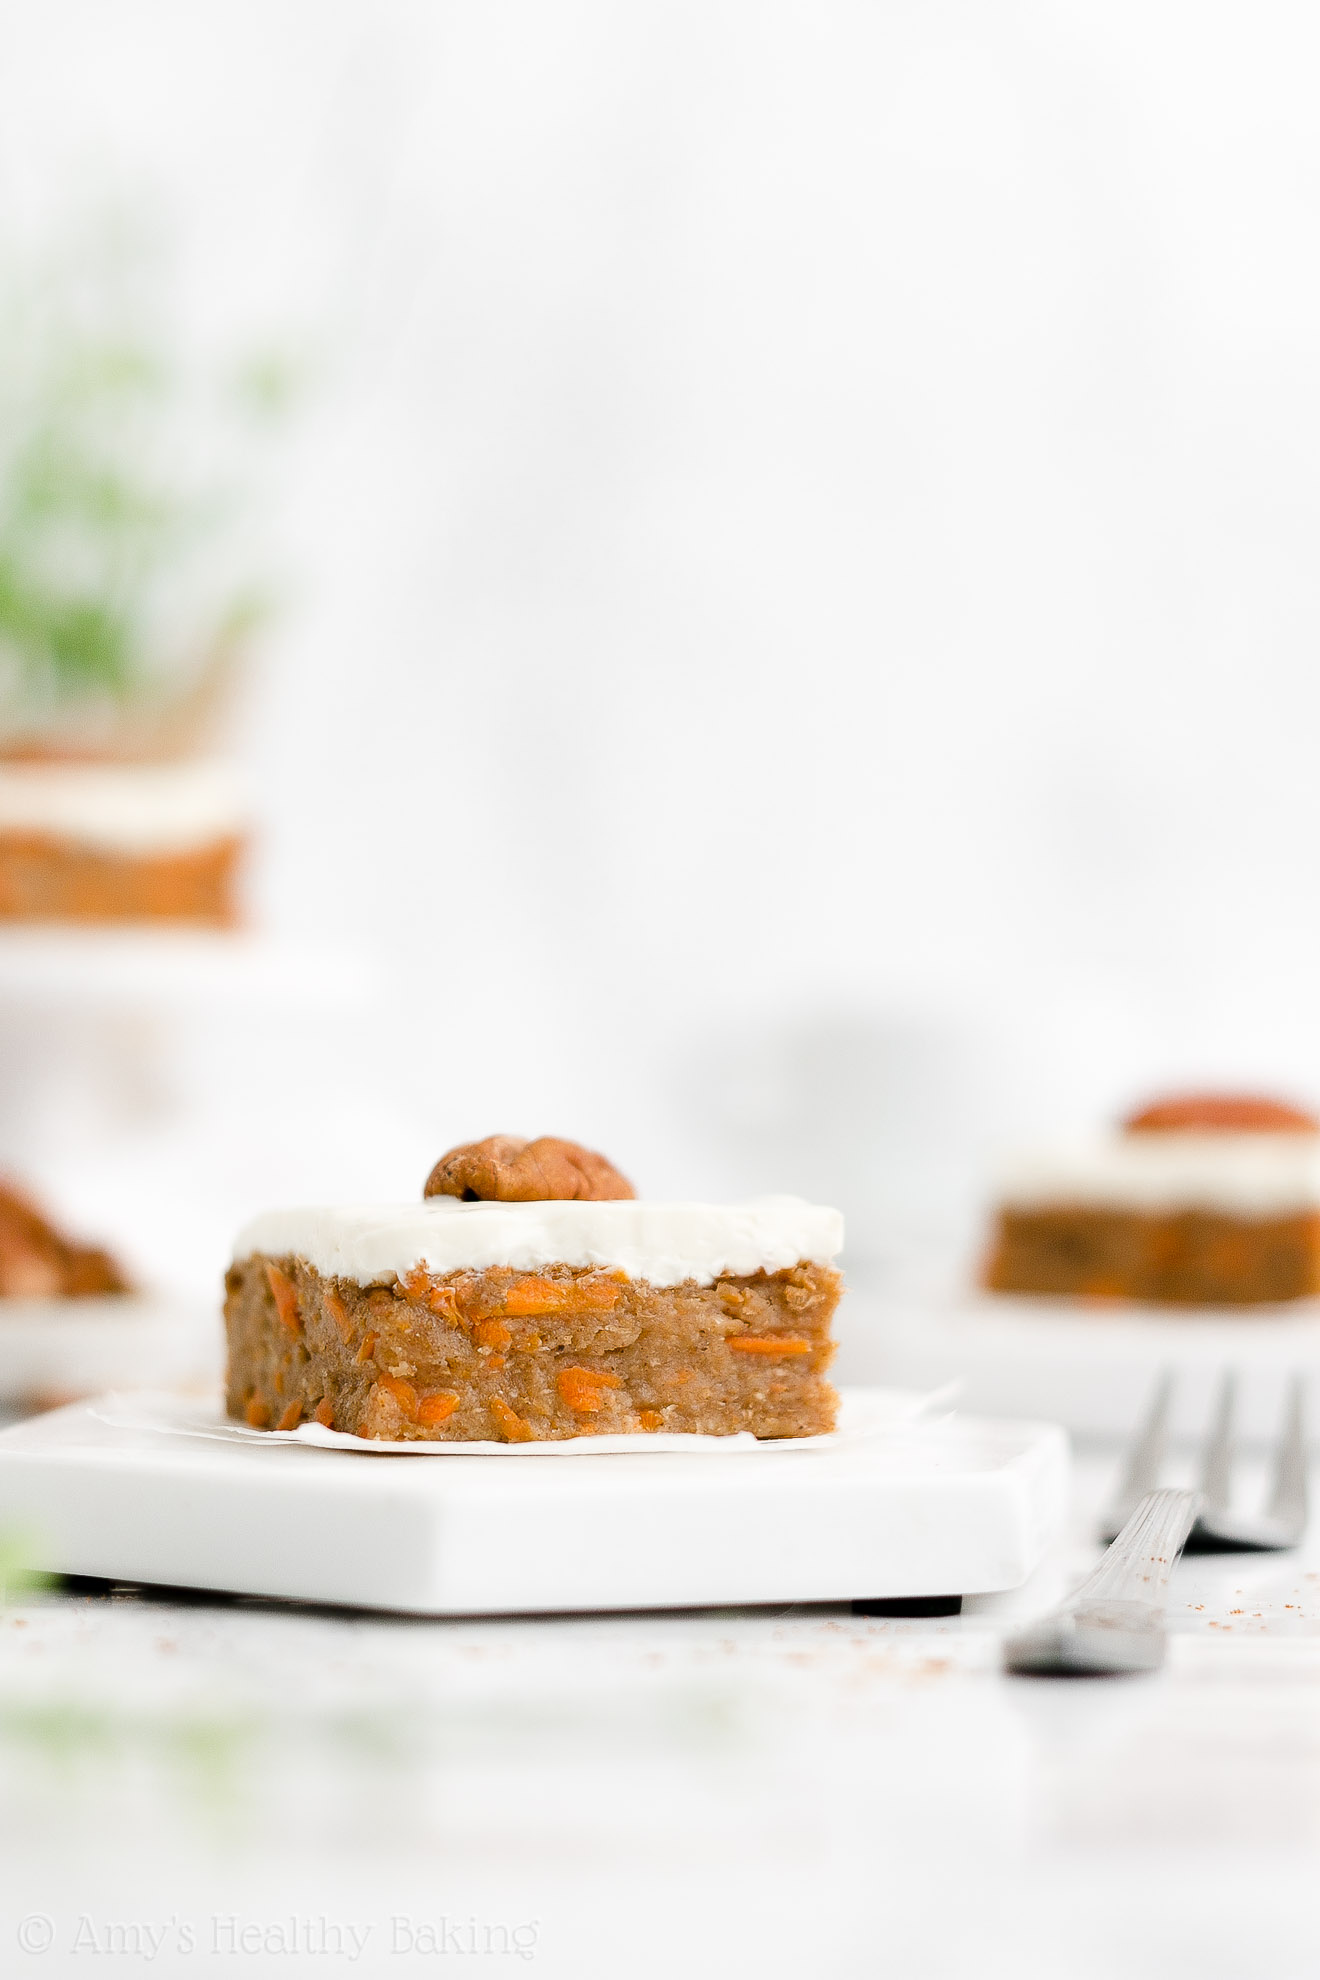 Easy Healthy Homemade Gluten Free Low Sugar Moist Chewy Carrot Cake Bars